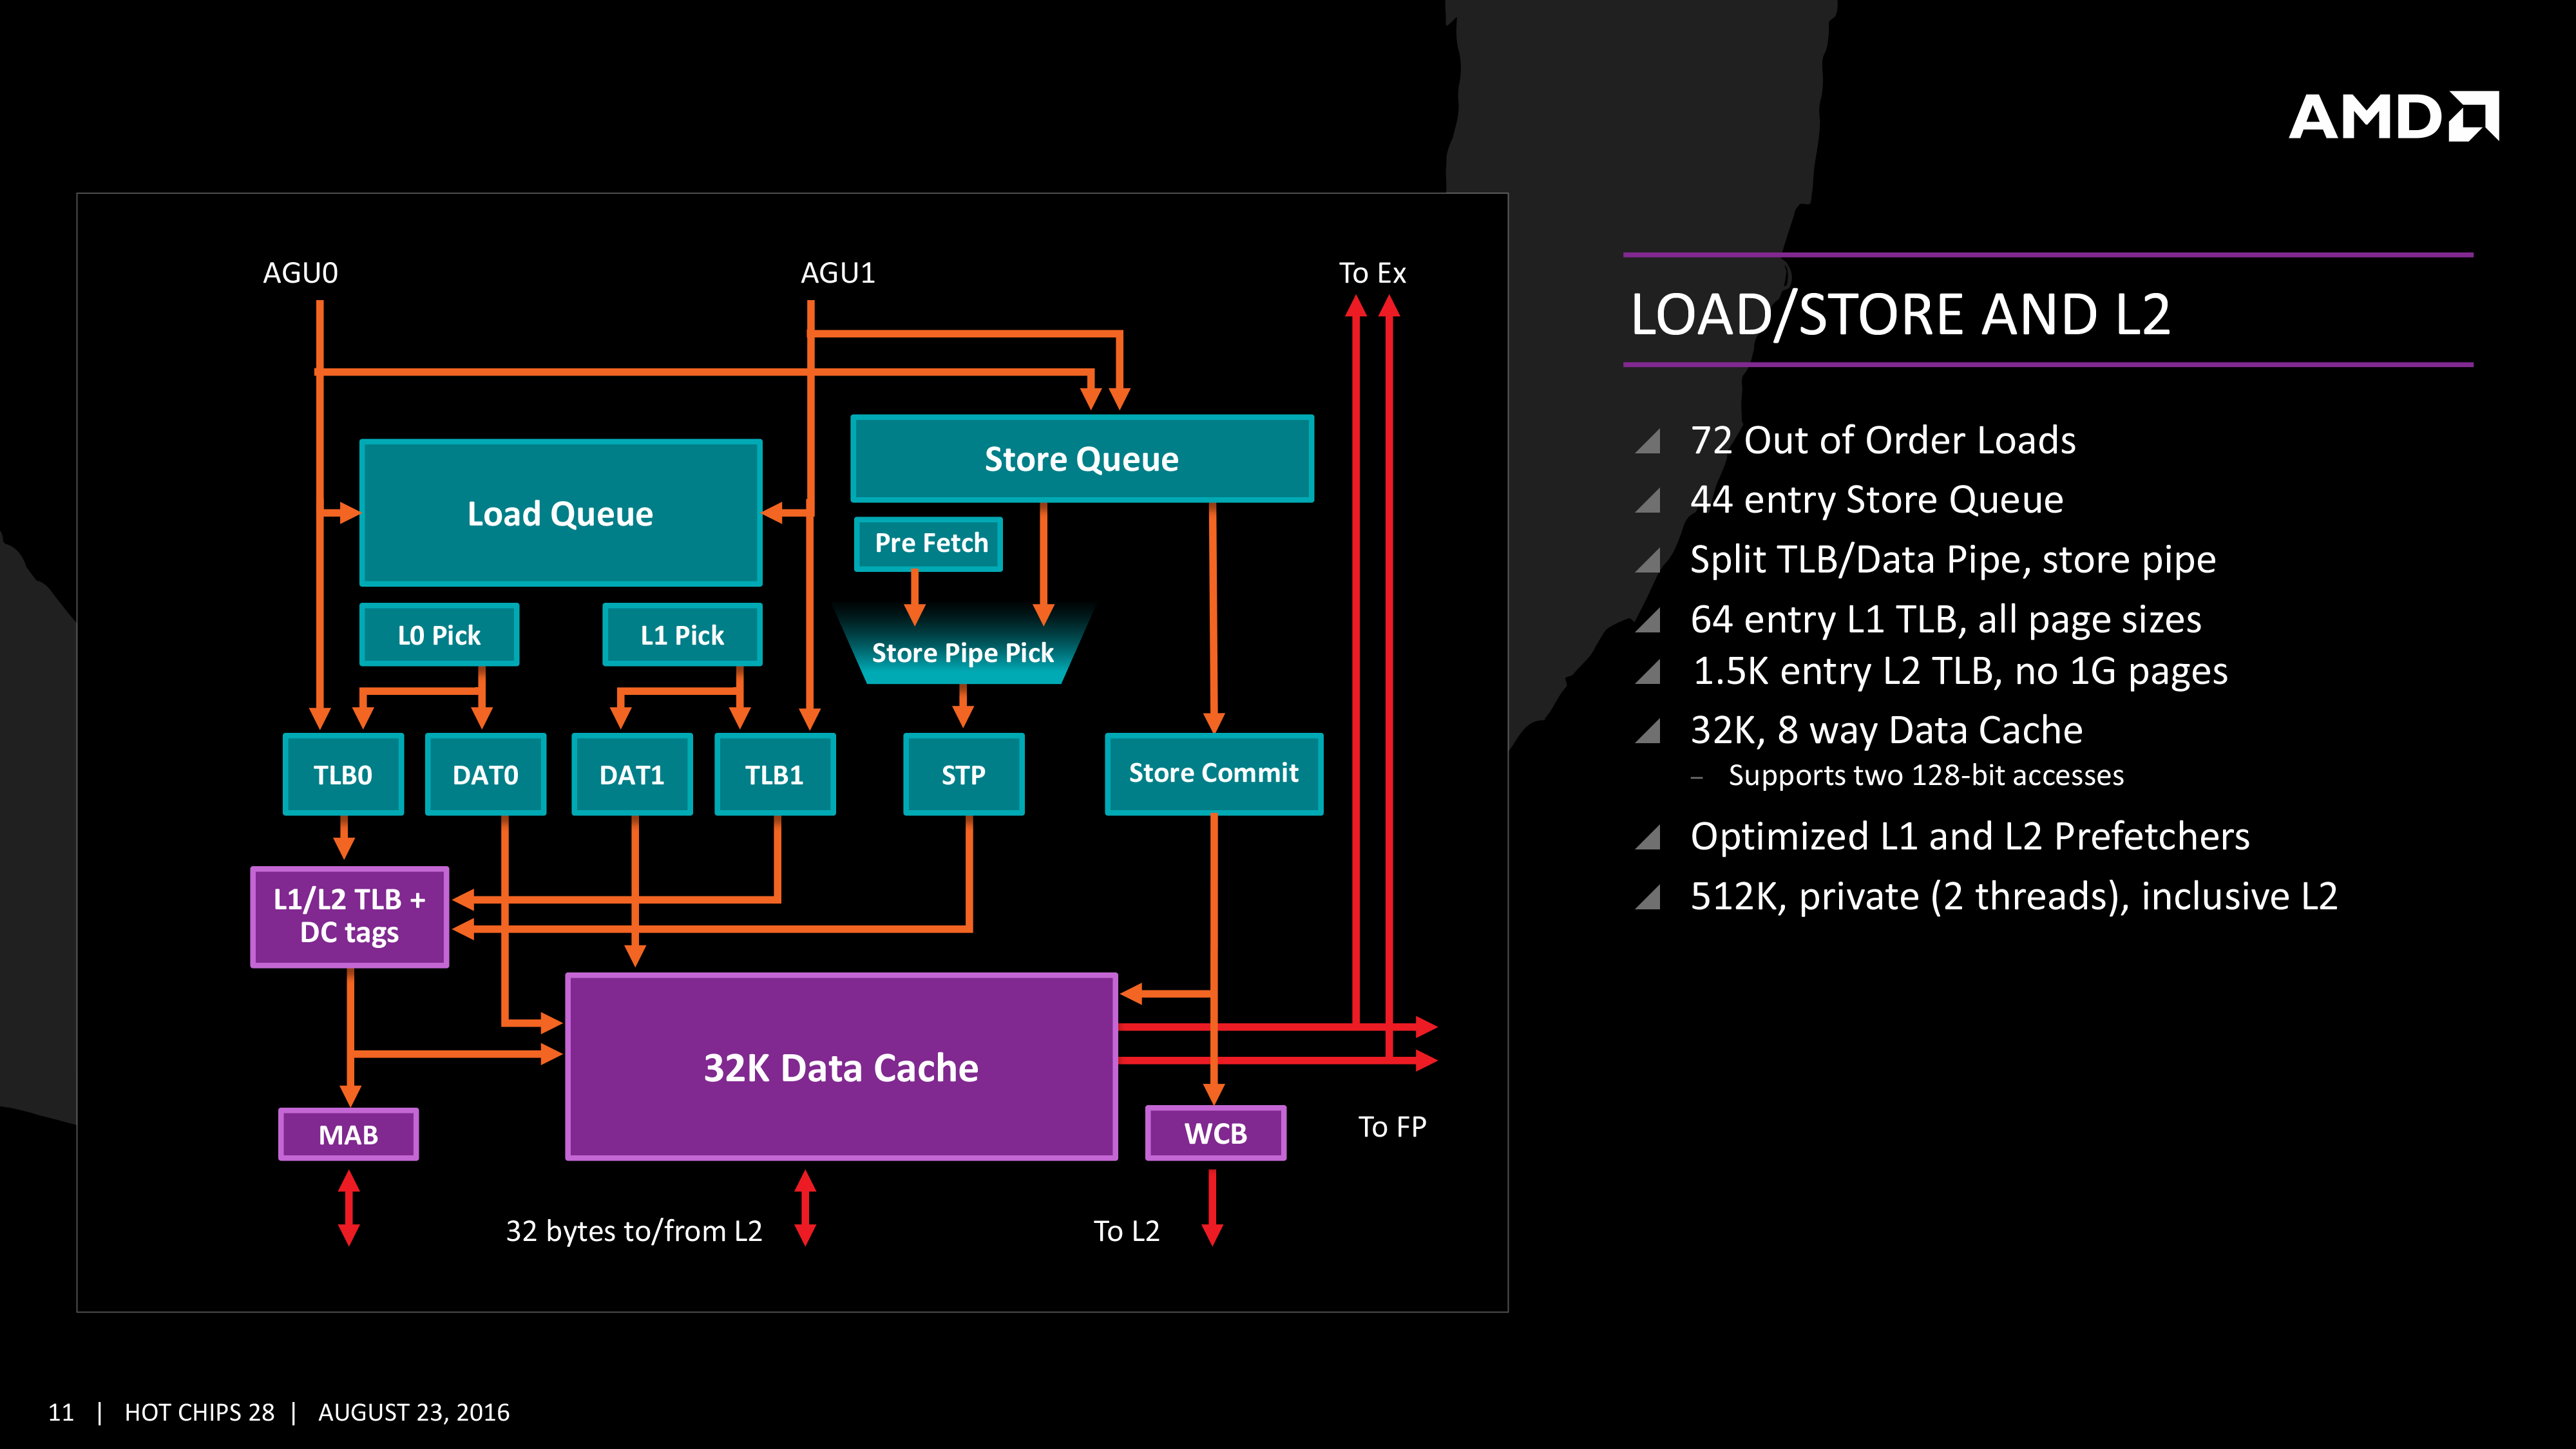 Execution, Load/Store, INT and FP Scheduling - The AMD Zen